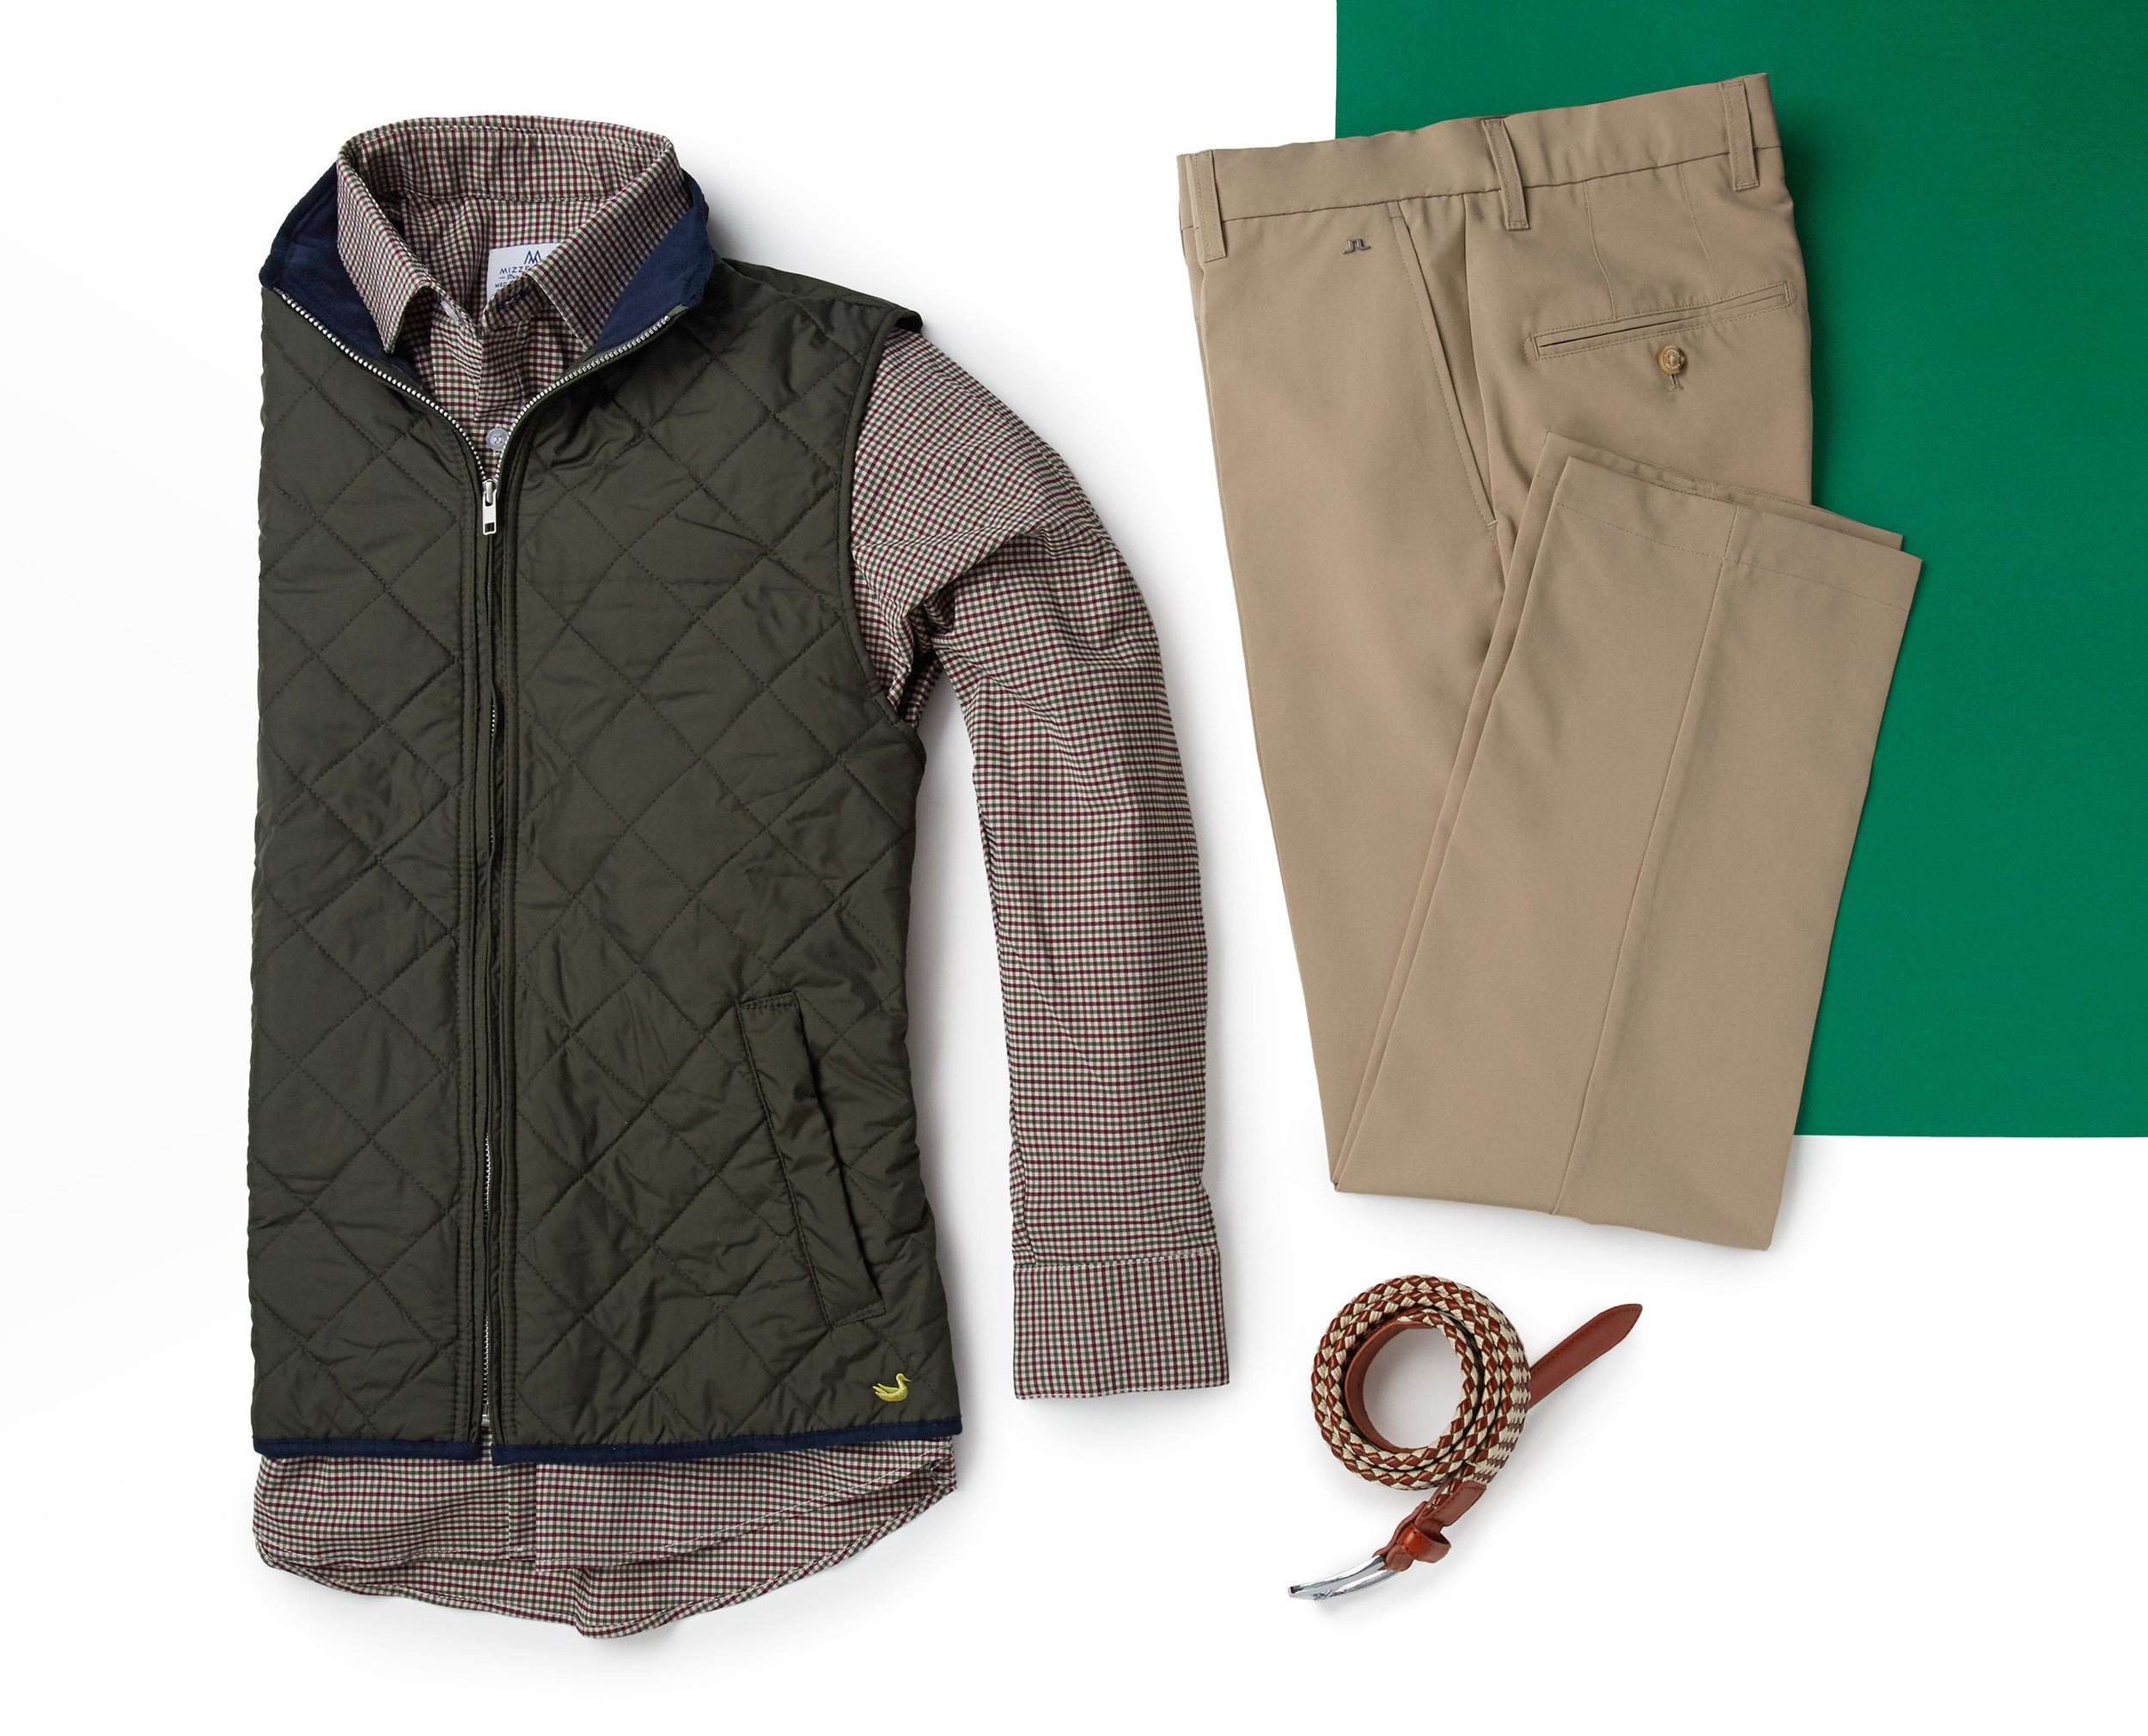 """For Travis' second Bogeybox, we included non-golf apparel. He requested casual items that can be worn out to at the bar with a few friends to watch the game. We added layering pieces that blend well with the four-way stretch button down.""   - Nik. Bogeybox Pro"